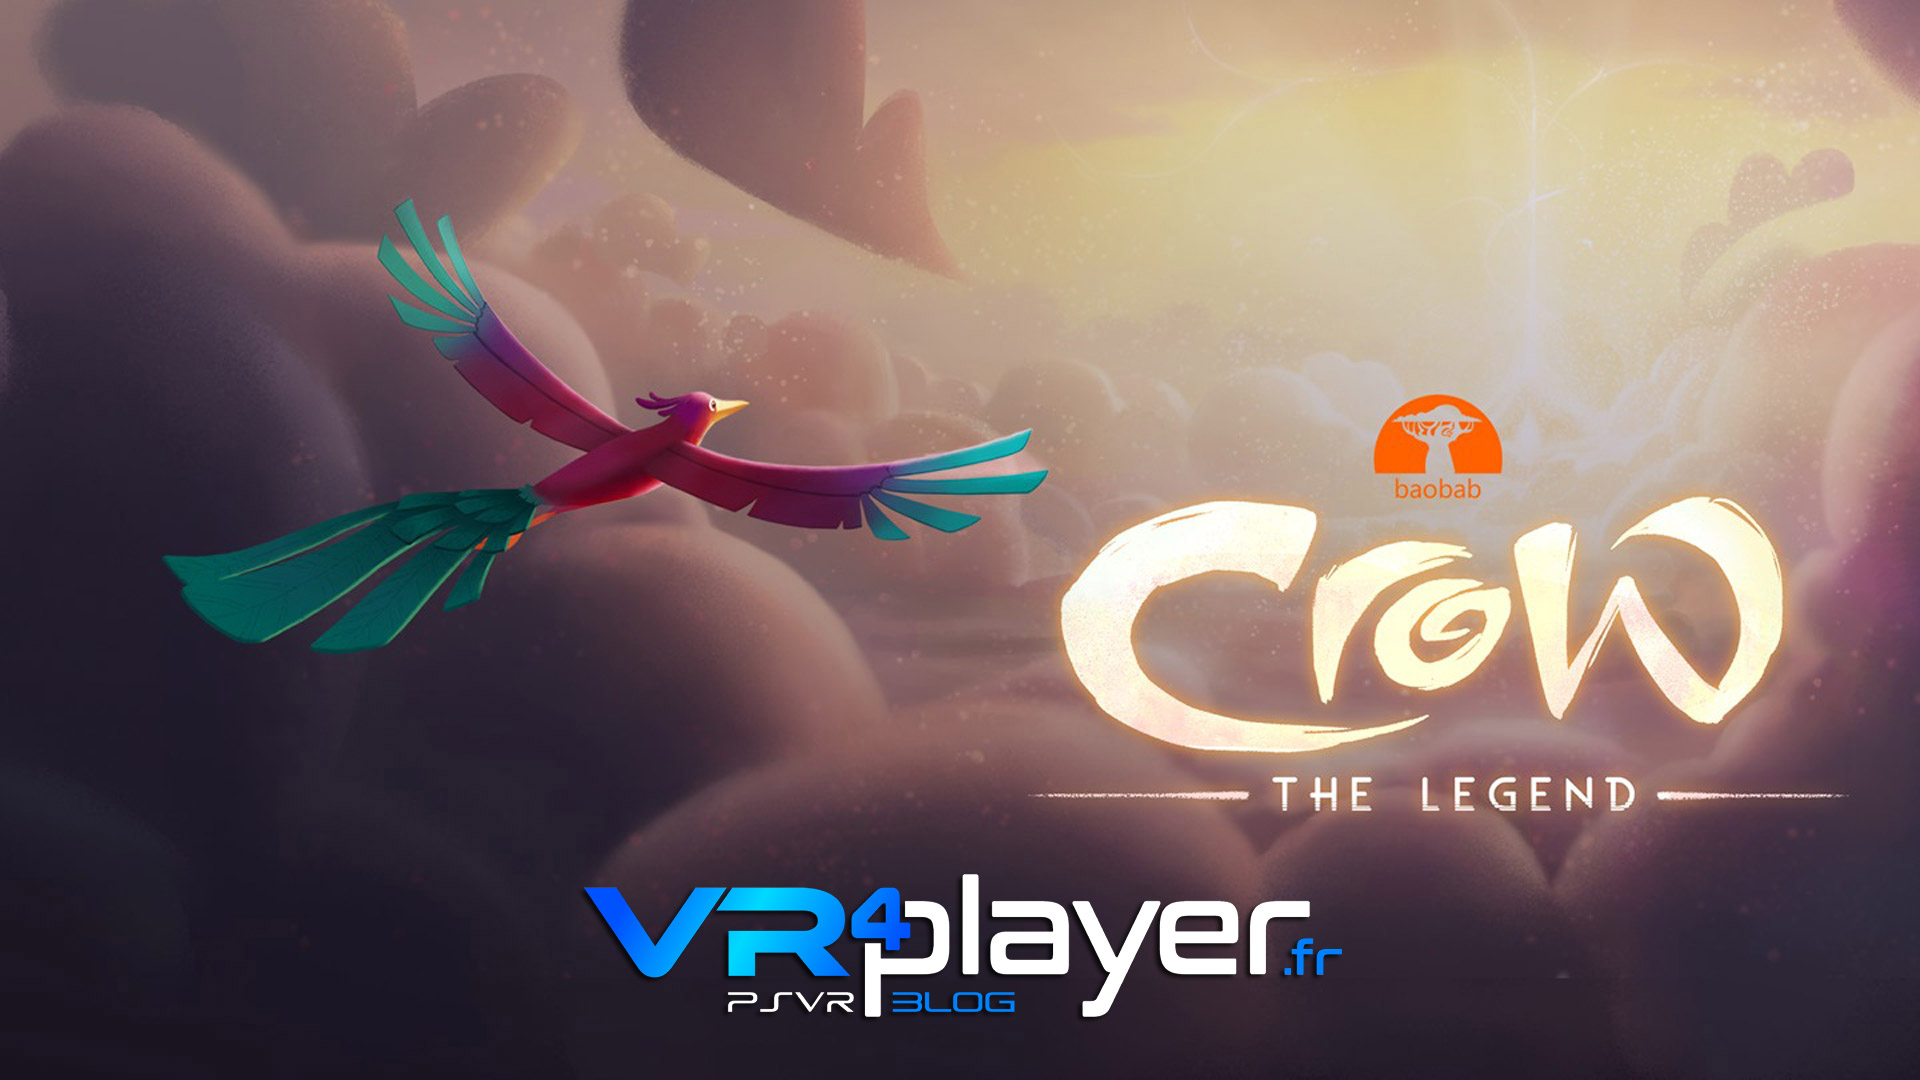 Crow the Legend, le film d'animation disponible sur PSVR - vr4player.fr